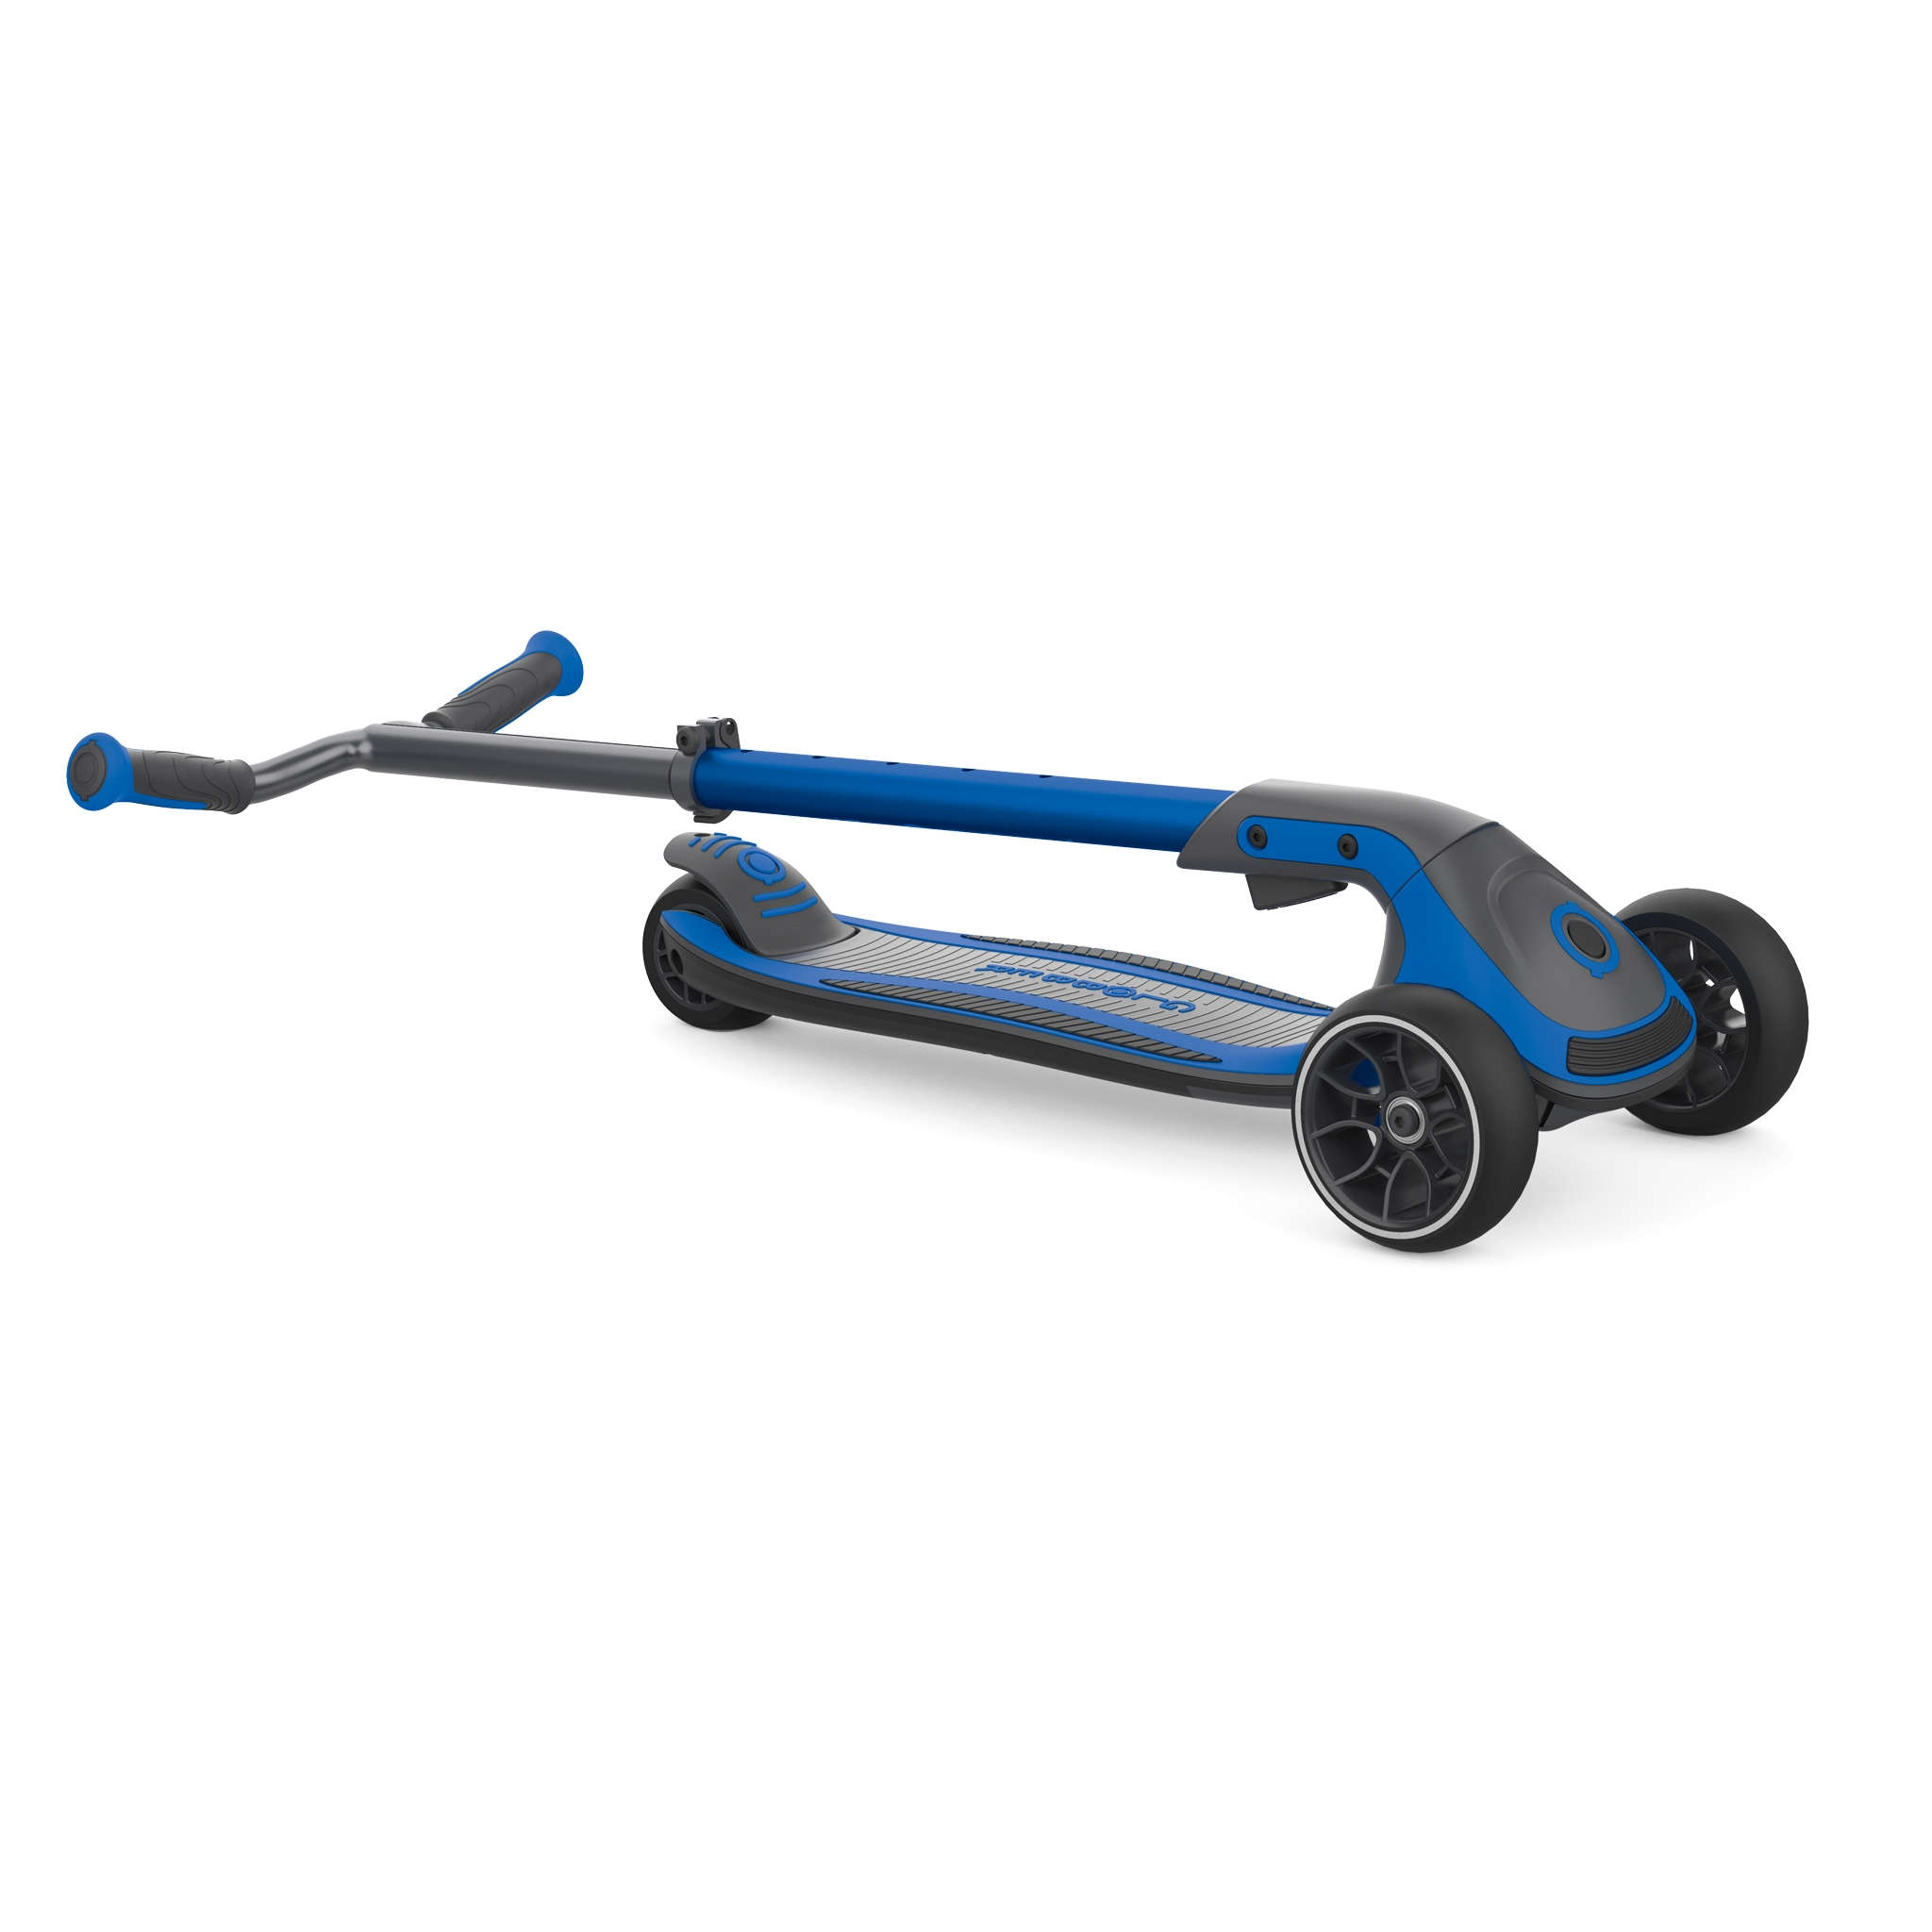 3 wheel foldable scooter for kids, teens and adults - Globber ULTIMUM 4